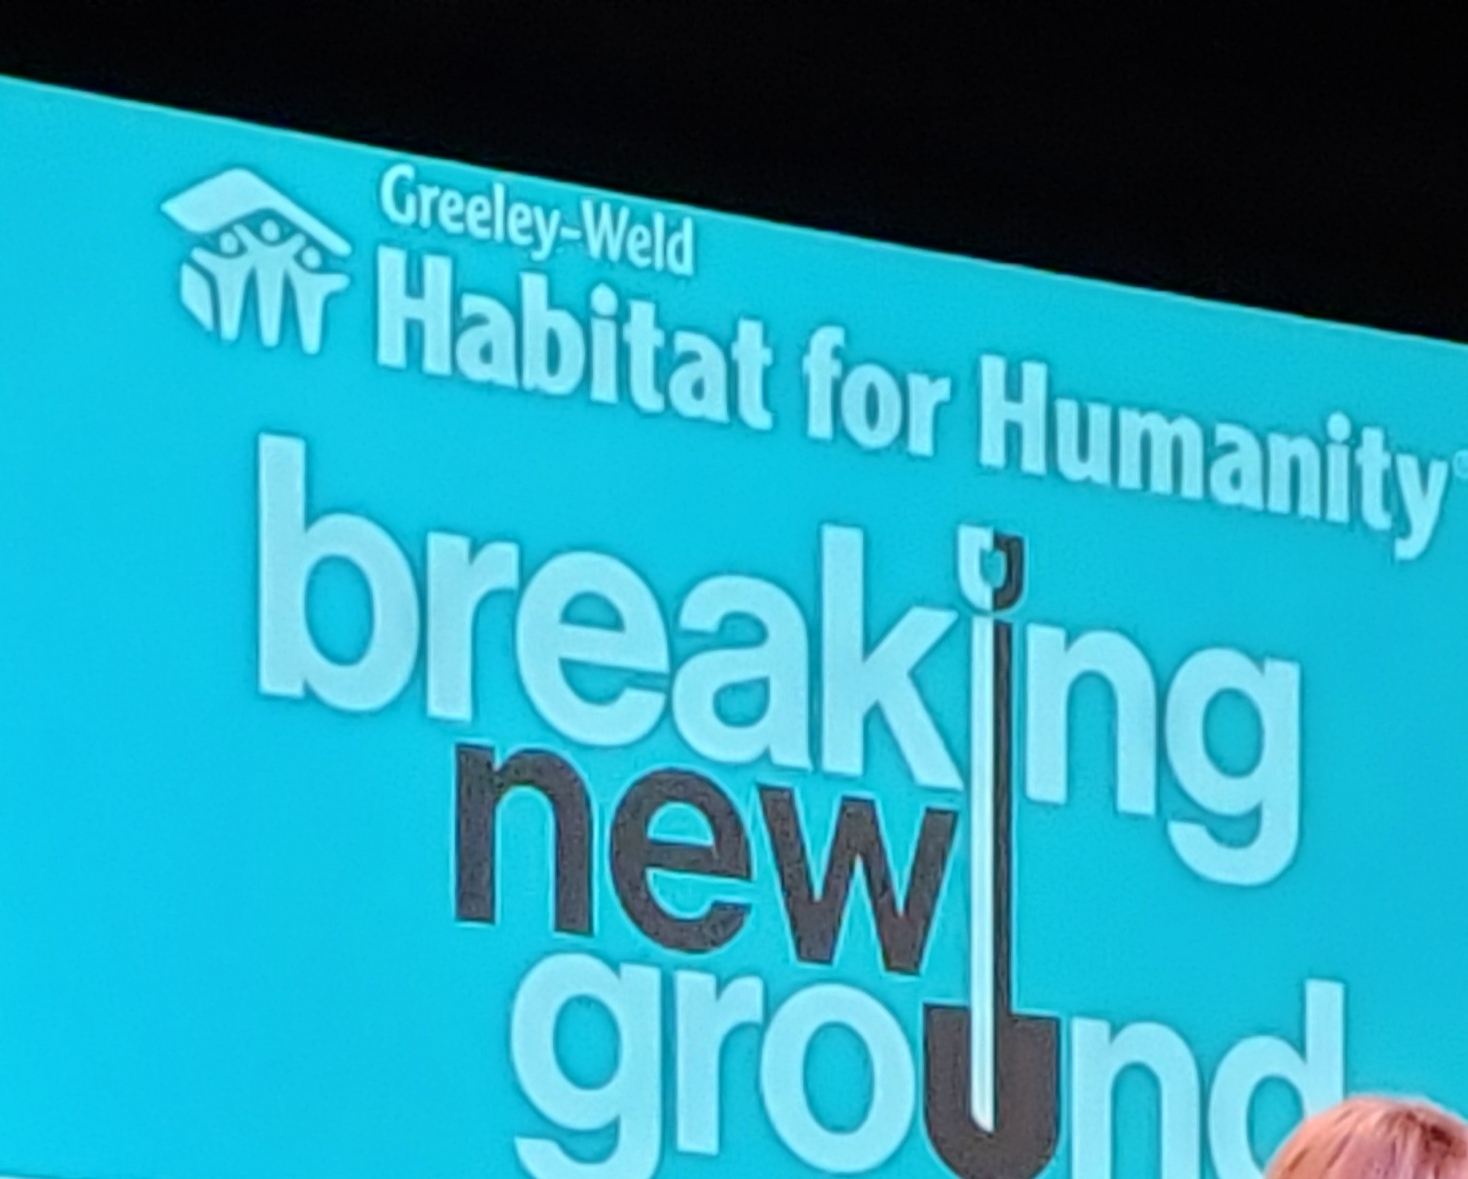 Greeley-Weld Habitat for Humanity